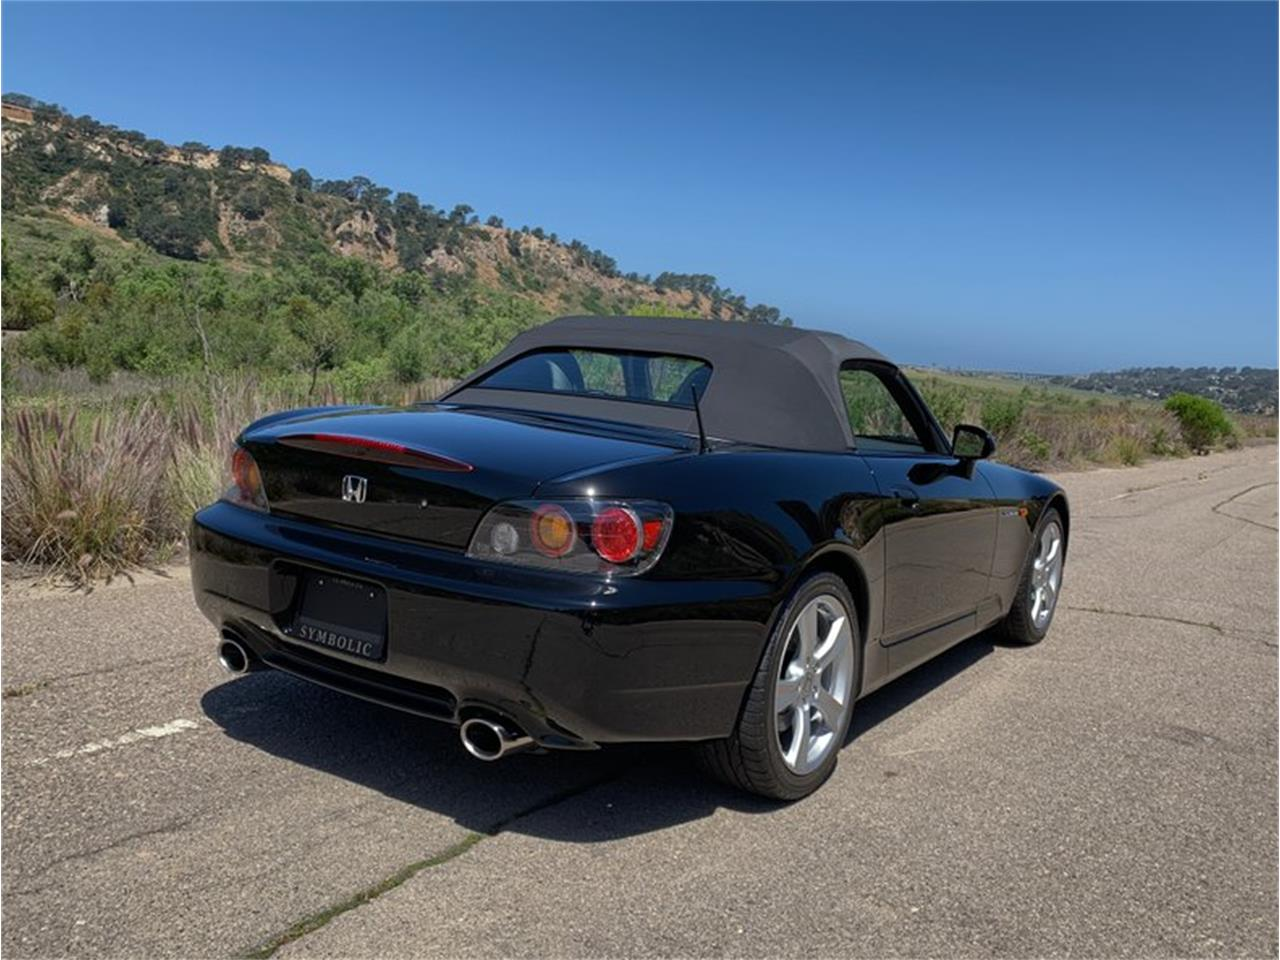 2009 Honda S2000 for sale in San Diego, CA – photo 23